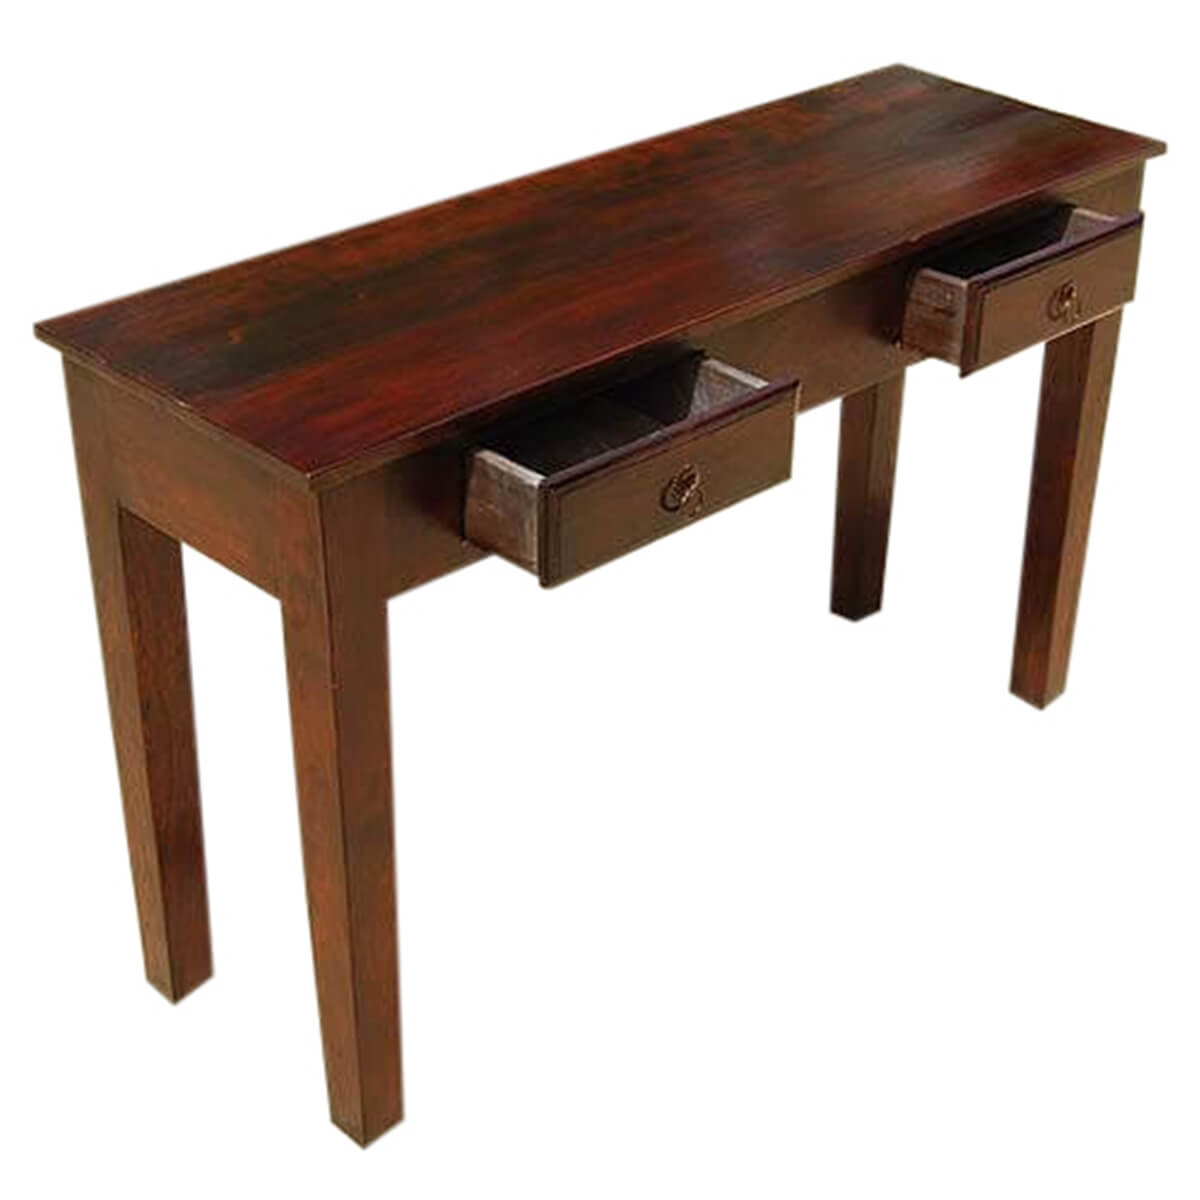 Storage Drawers Console Hall Entry Way Foyer Table